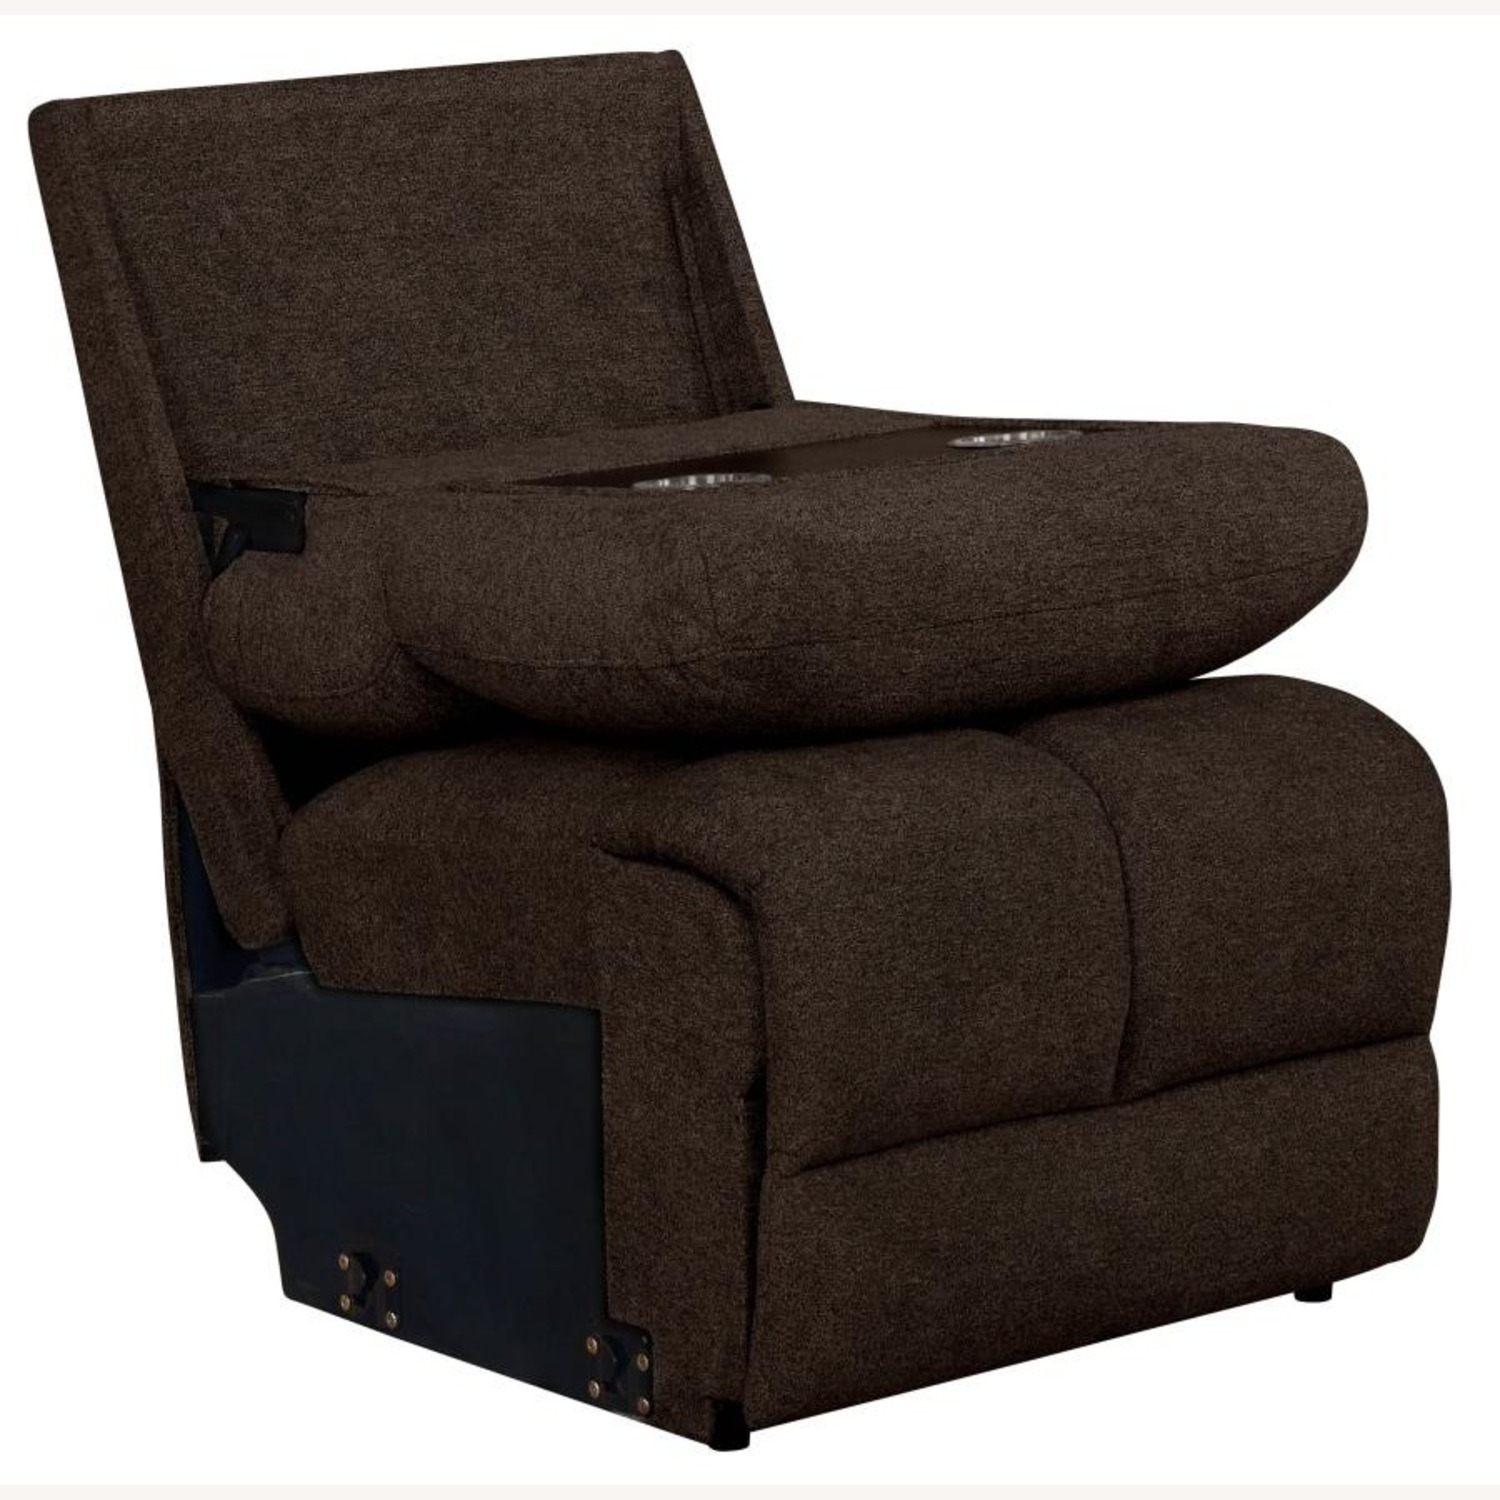 6Piece Power Sectional In Brown Performance Fabric - image-3